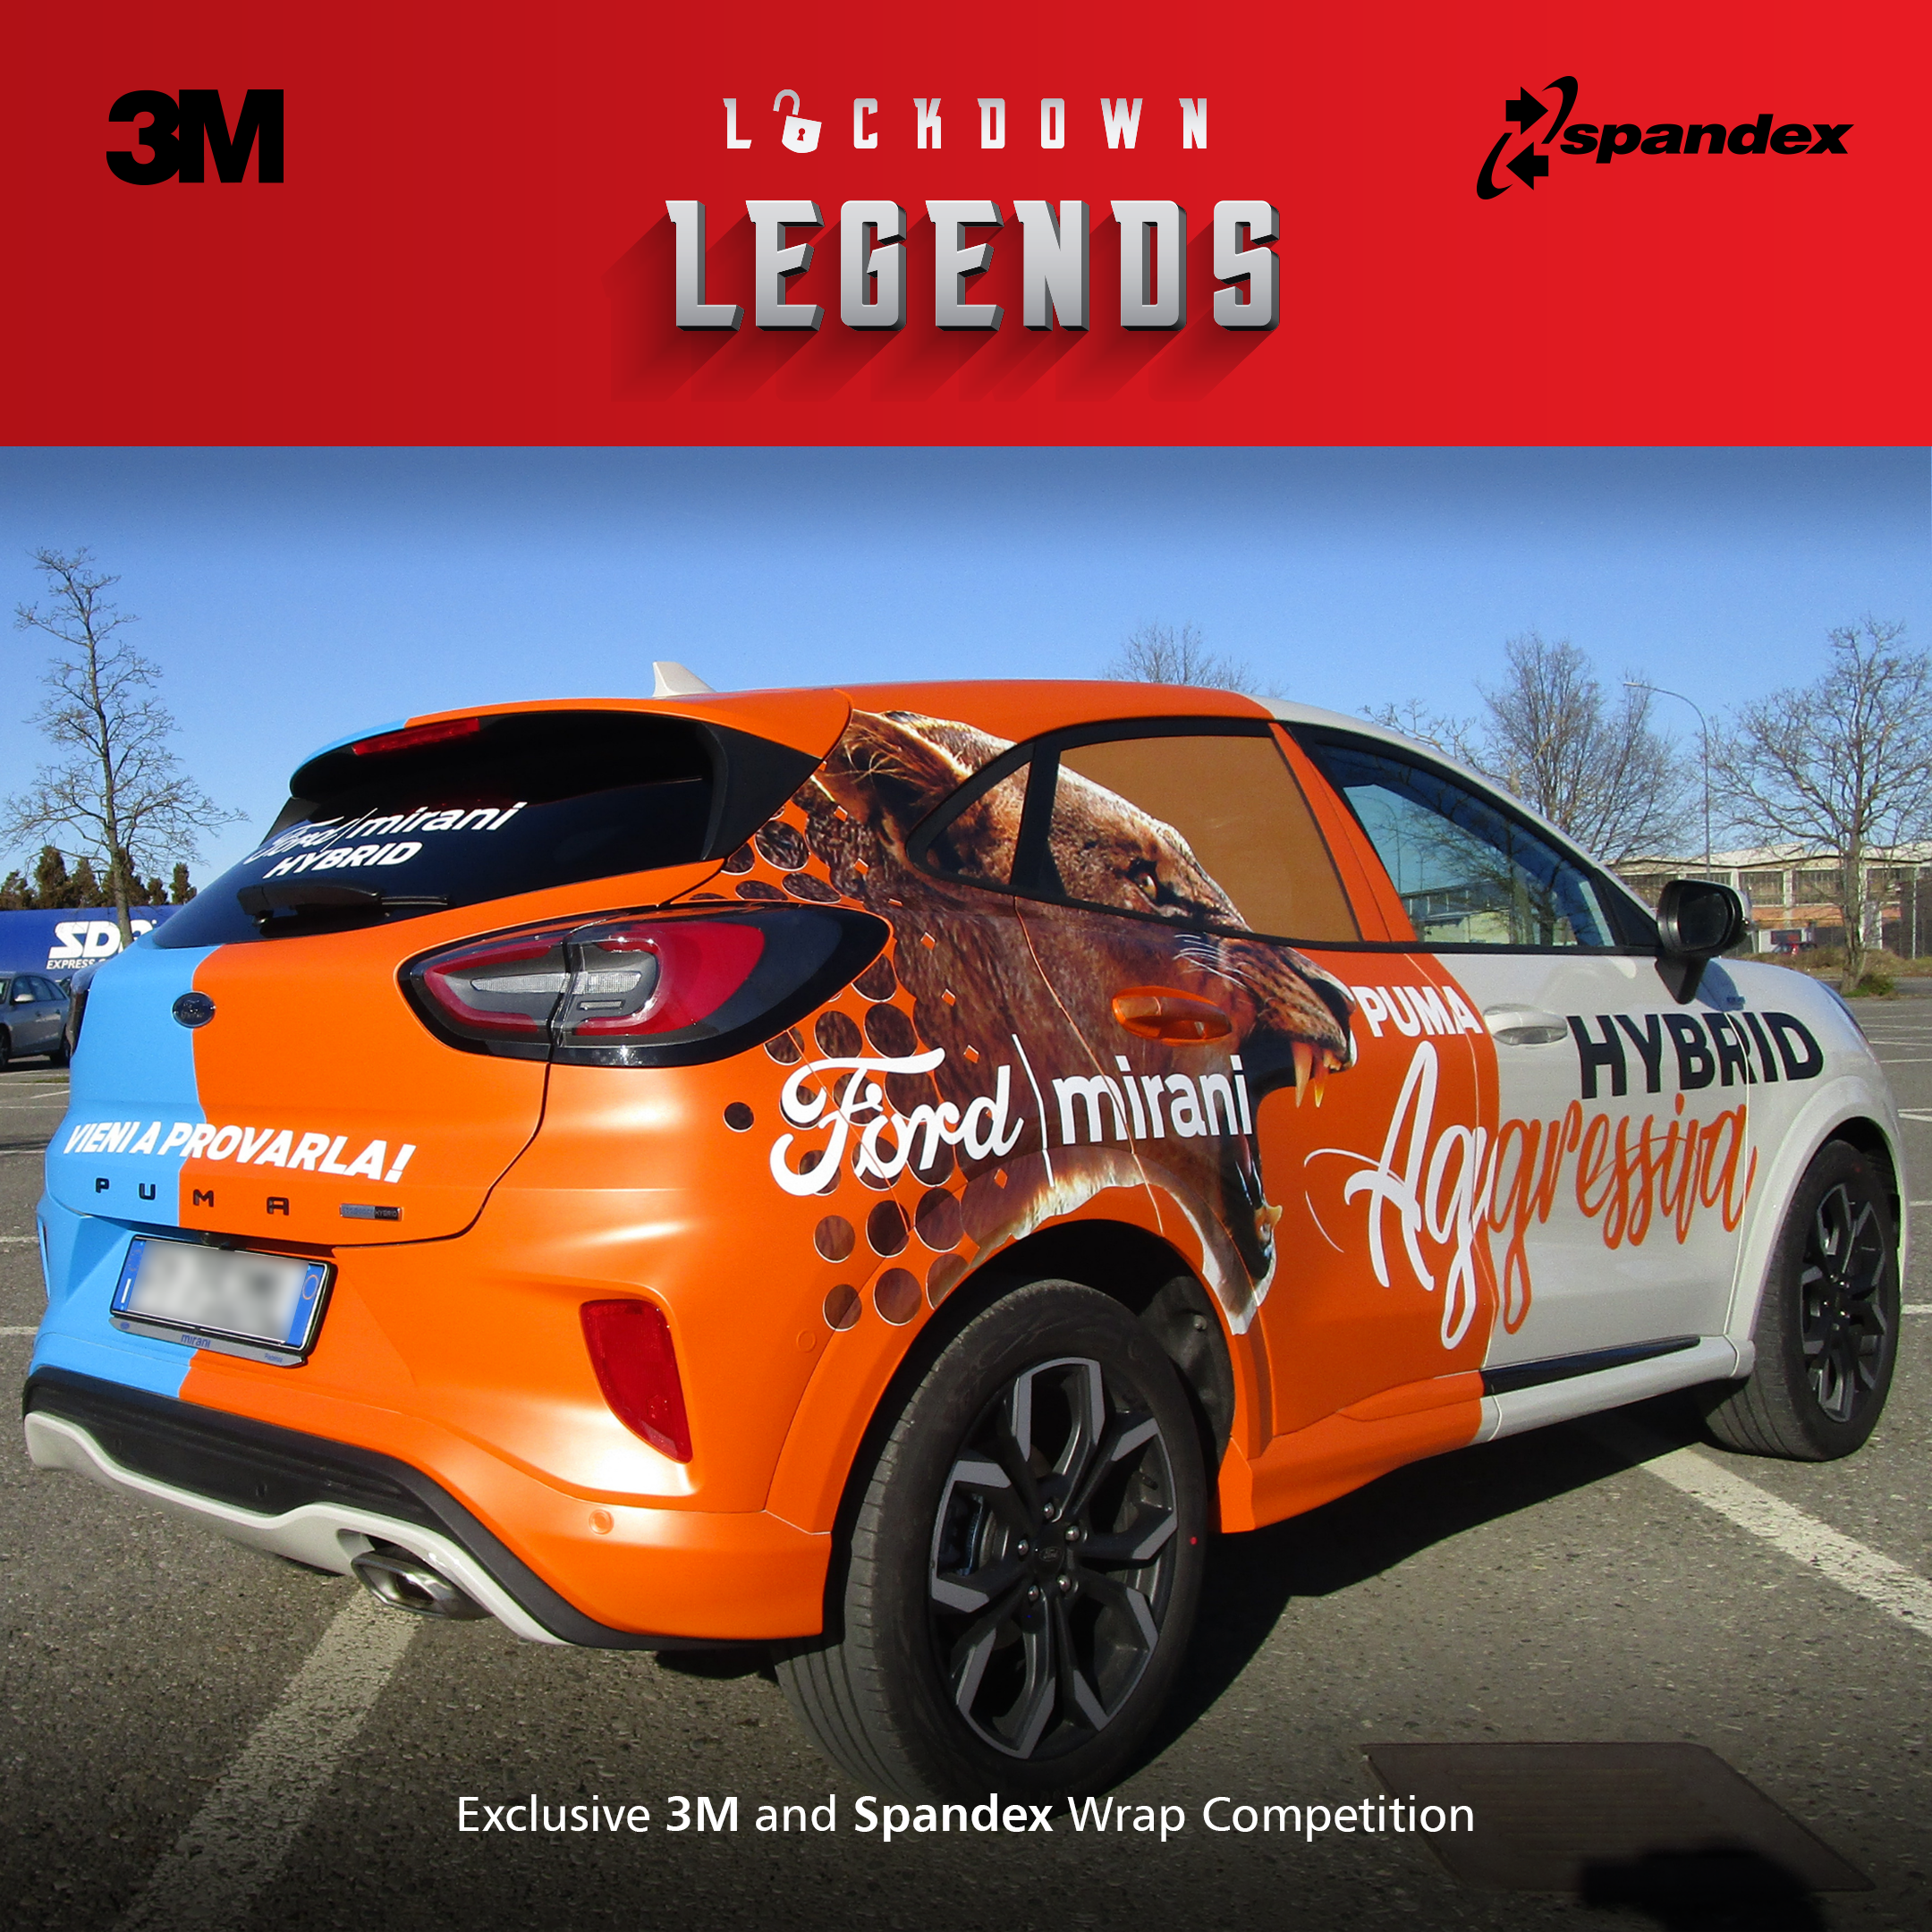 Secondo classificato Lockdown Legends